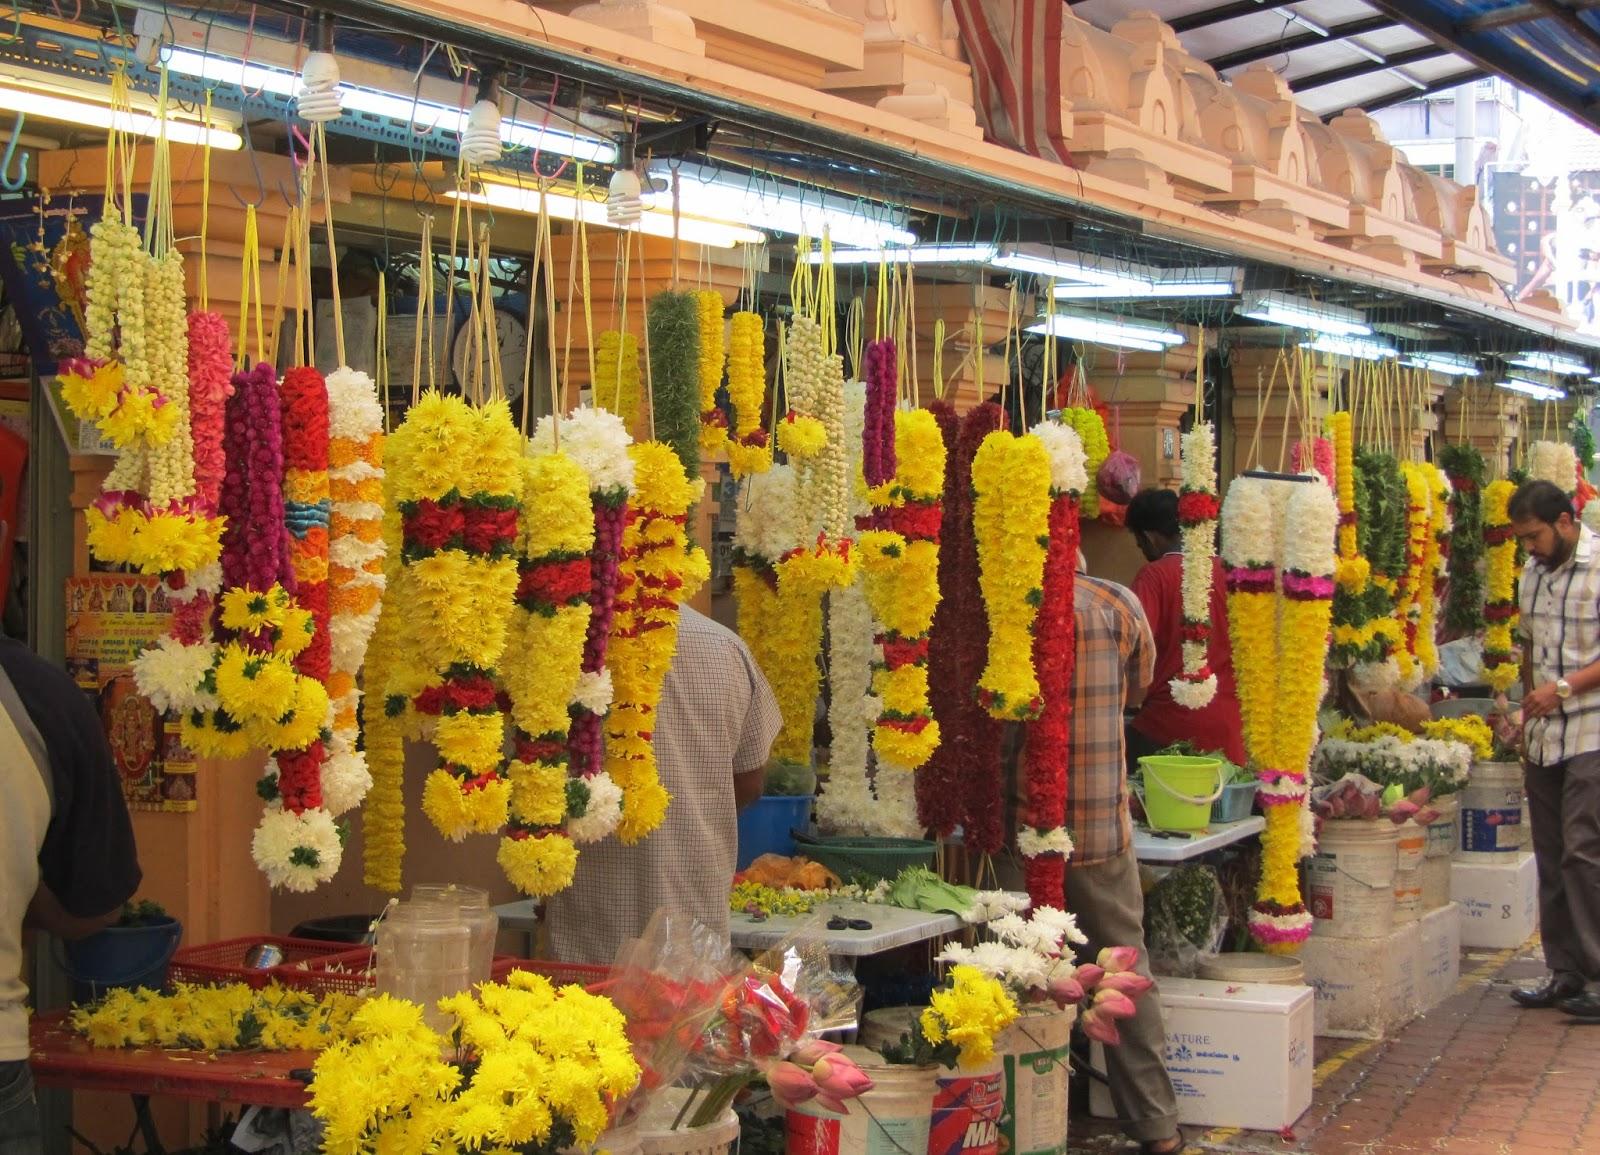 With uprising wholesale flower market in Pune, Online Flower Delivery in Pune starts in Full Swing